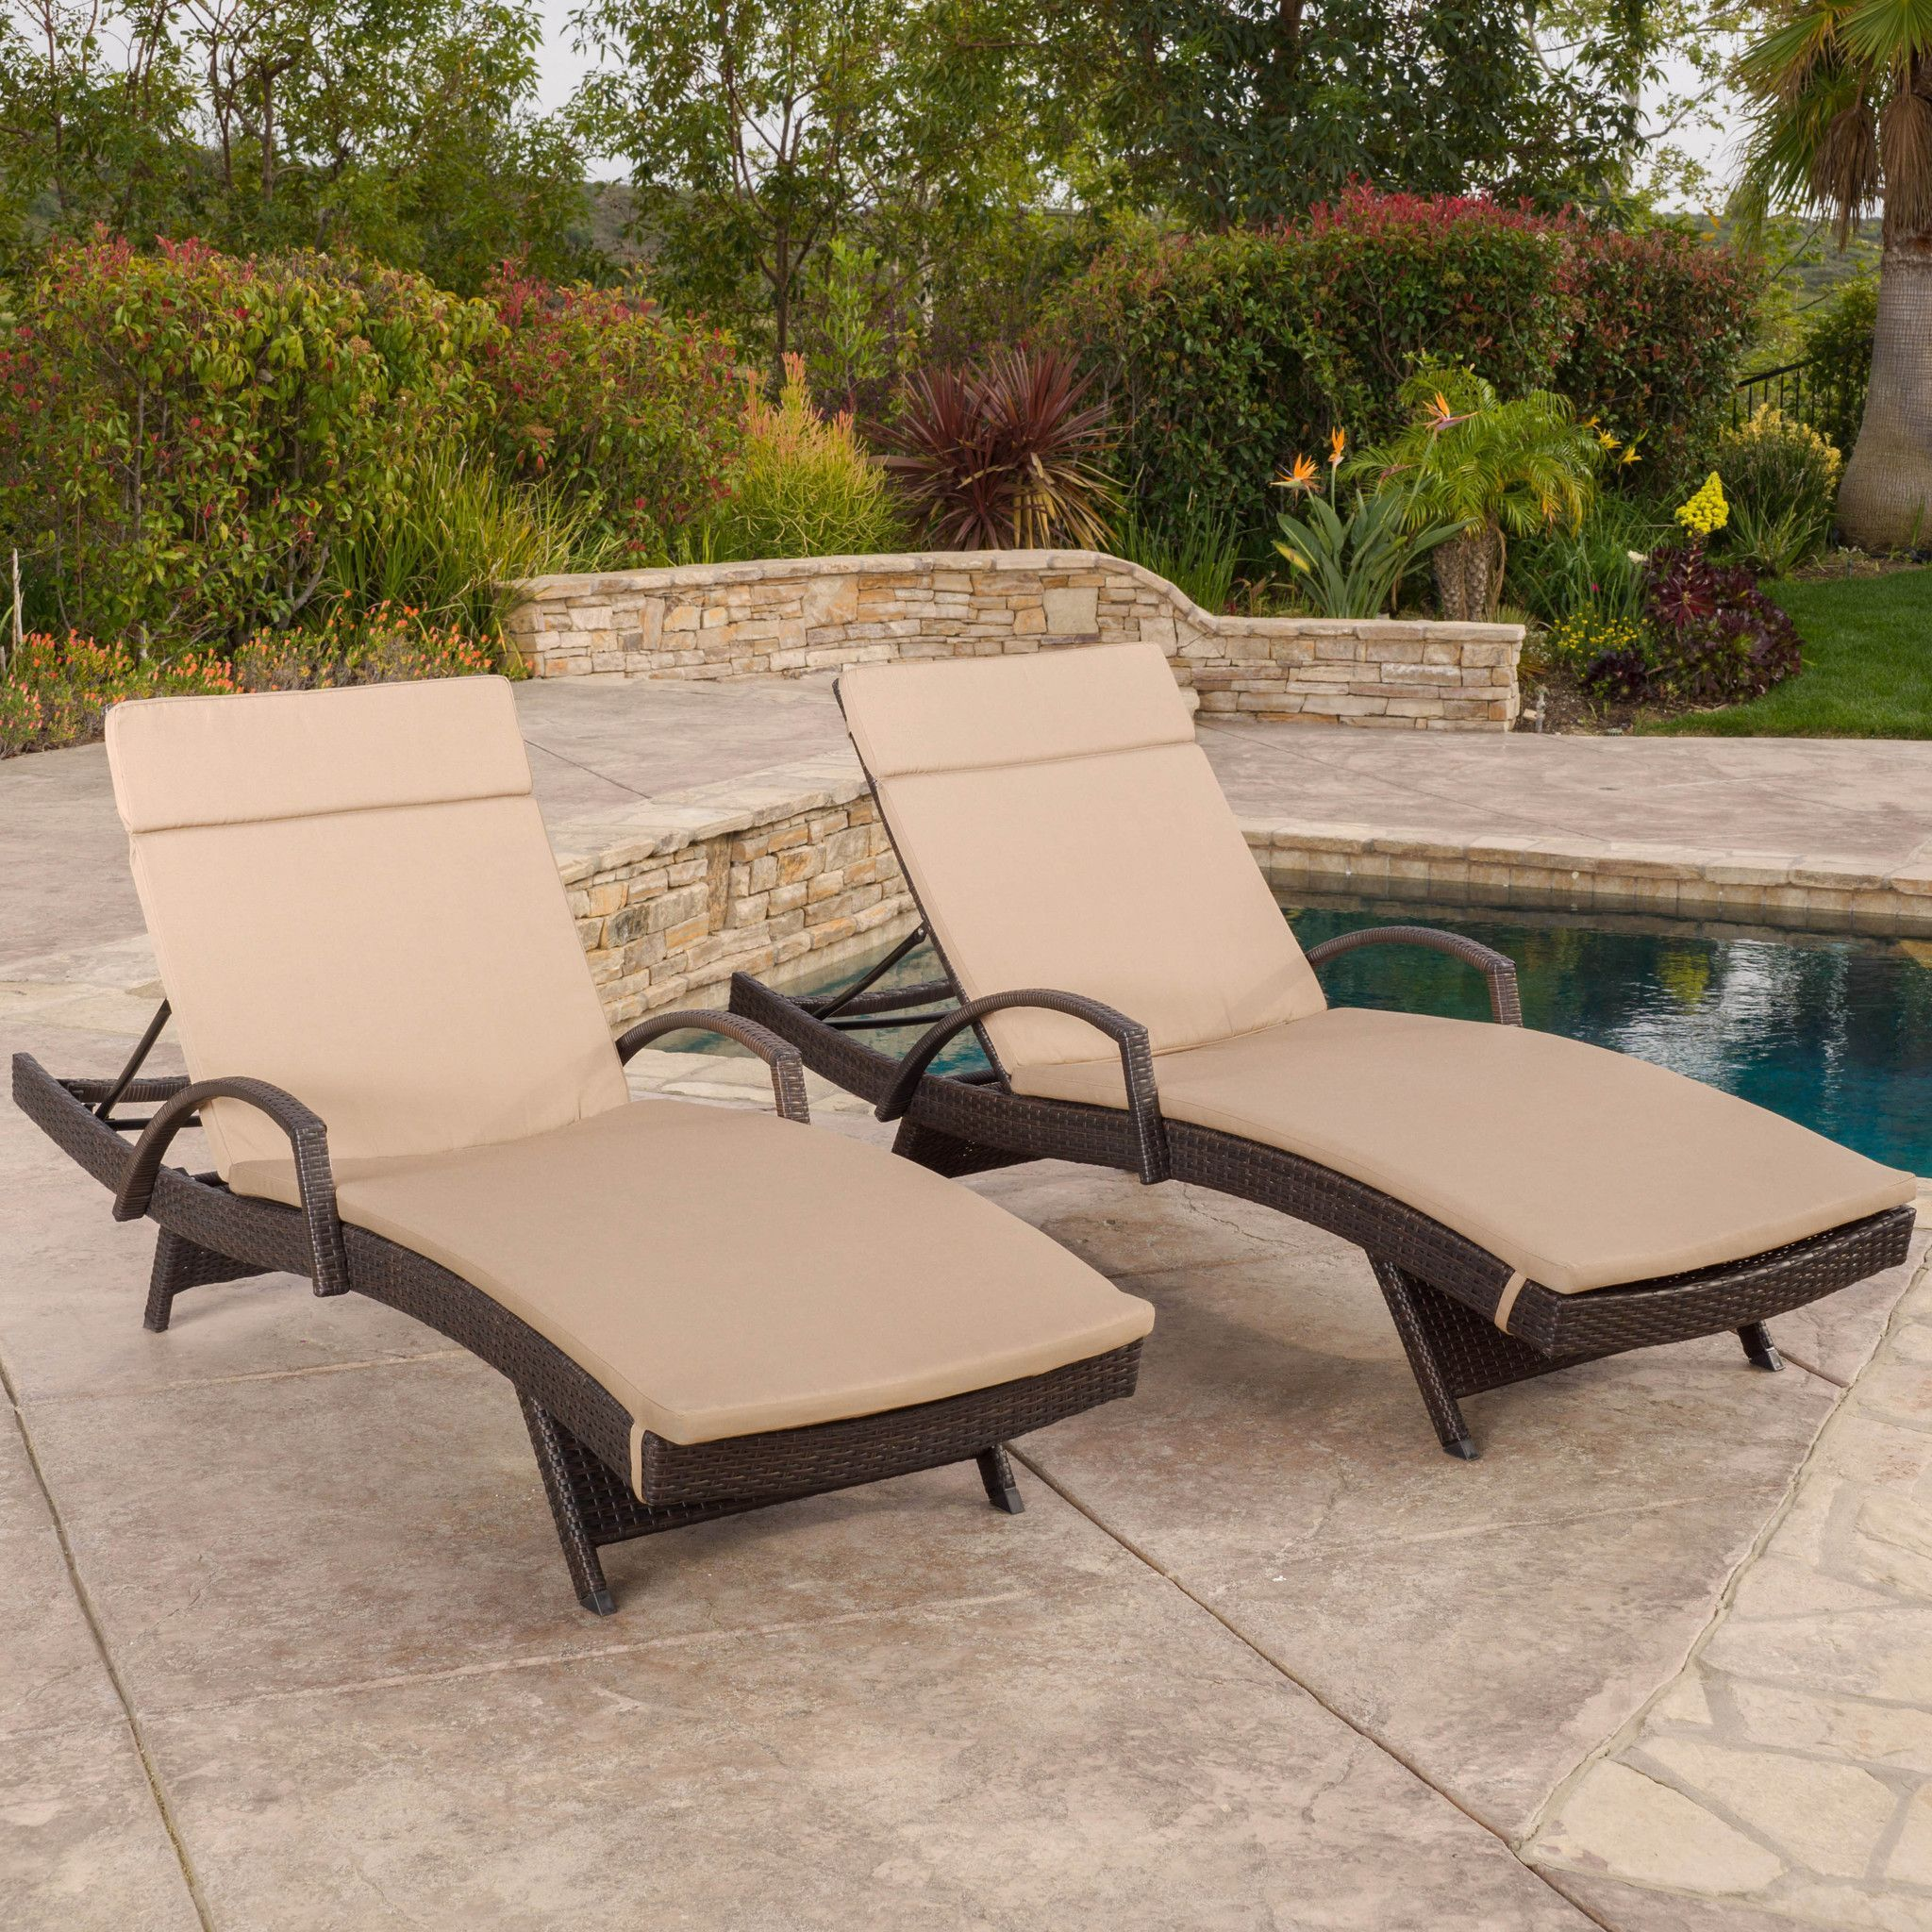 Lakeport Outdoor Wicker Armed Chaise Lounge Chairs